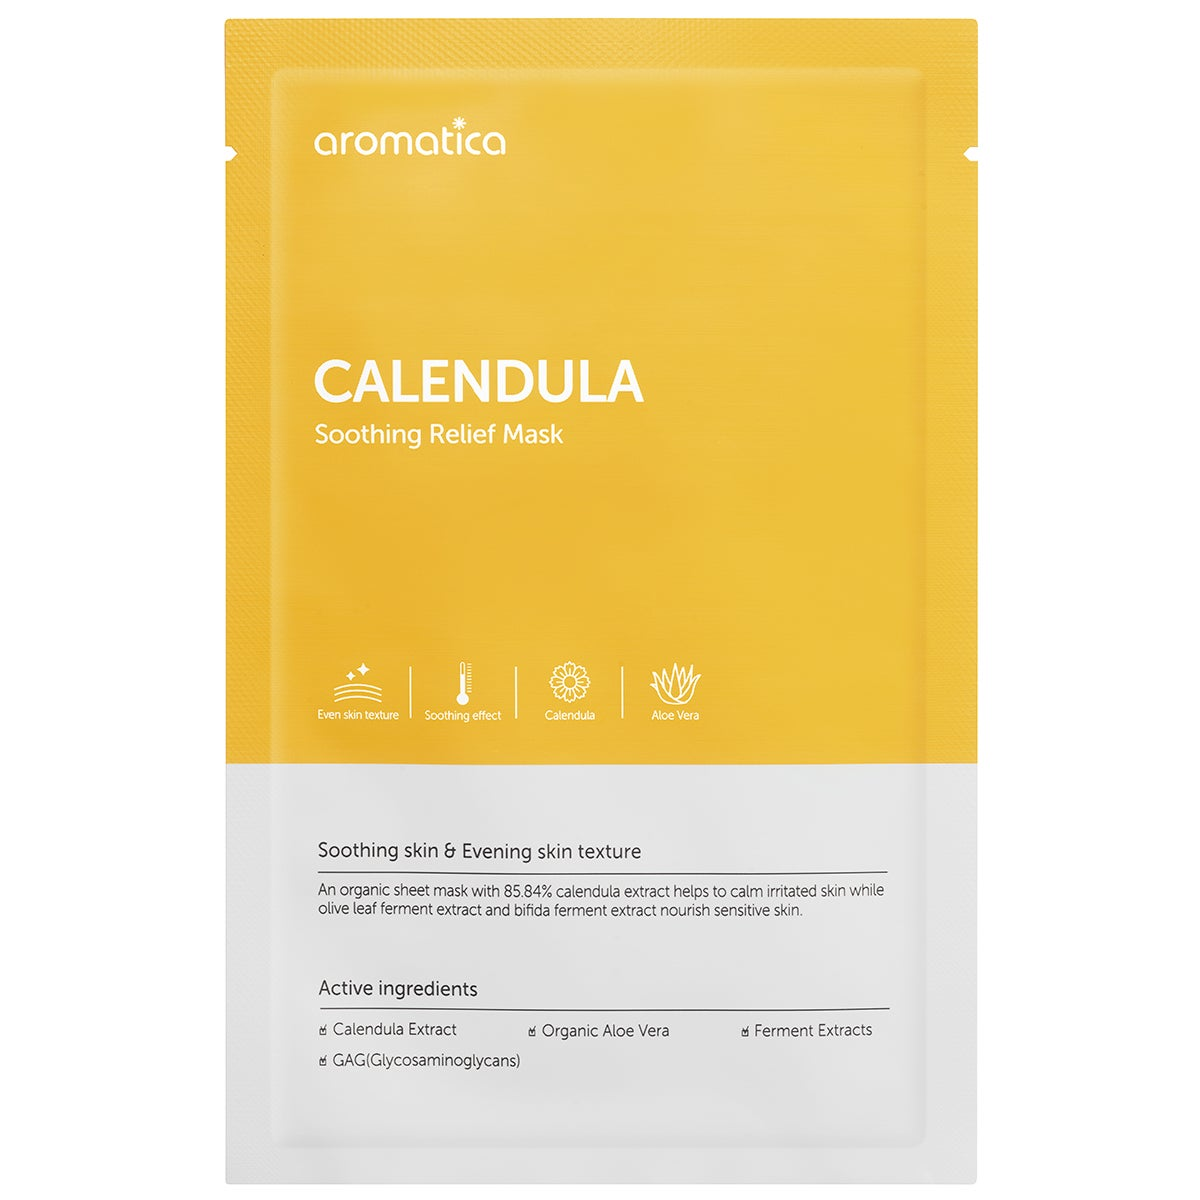 Aromatica Calendula Soothing Relief Mask